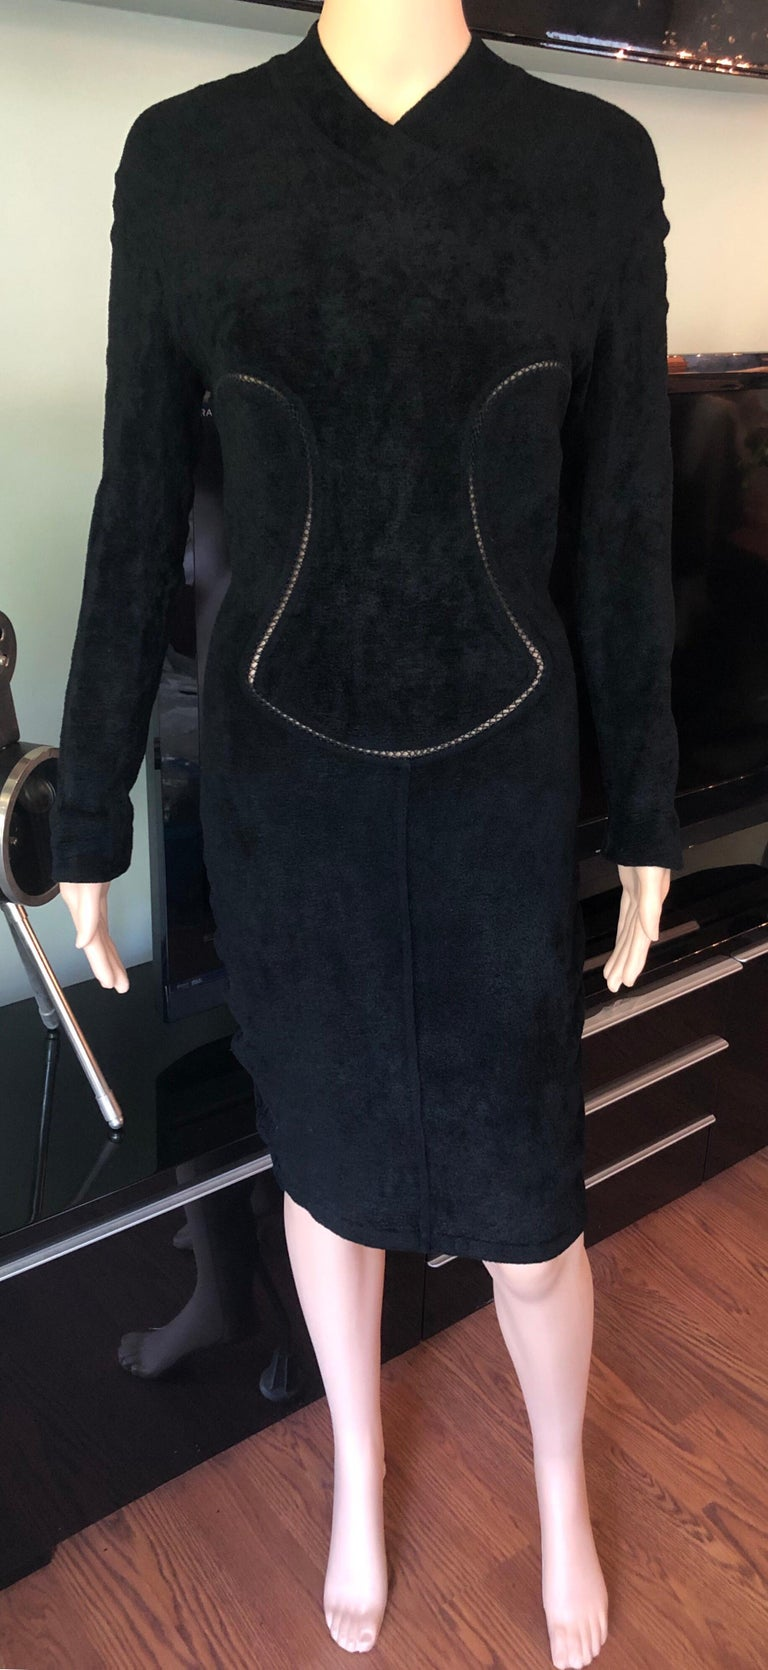 Azzedine Alaia F/W 1991 Vintage Bodycon Velvet Knit Black Dress Size M  Alaïa heavy knit velvet dress with open knit trim throughout, V-neck, long sleeves and concealed zip closure at center back.